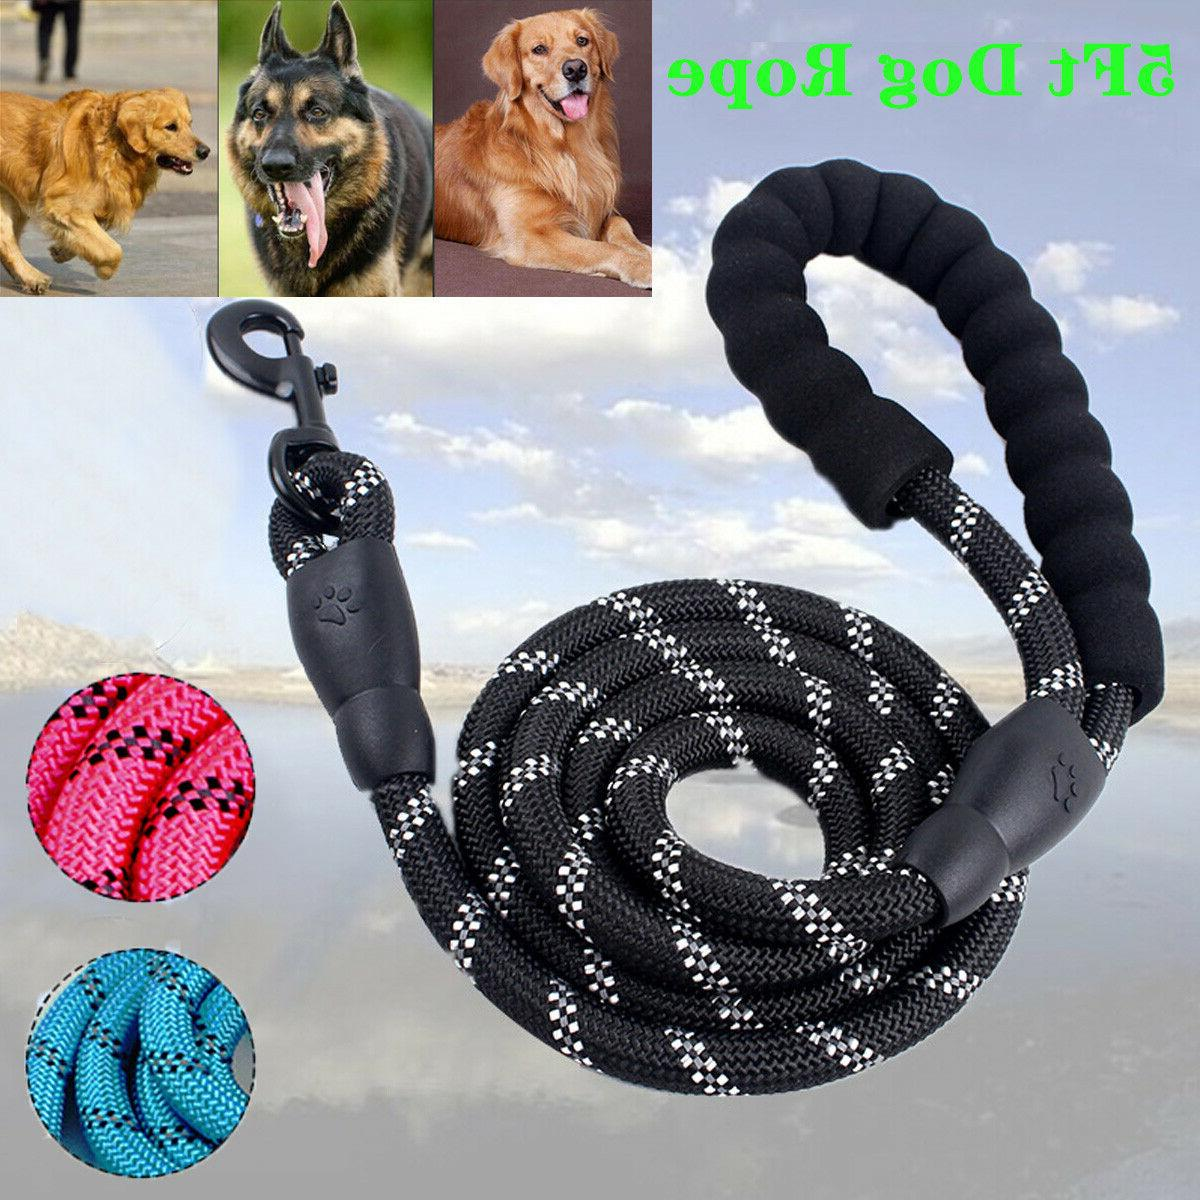 Dog Training Duty Nylon Rope with Handle for Large Dogs